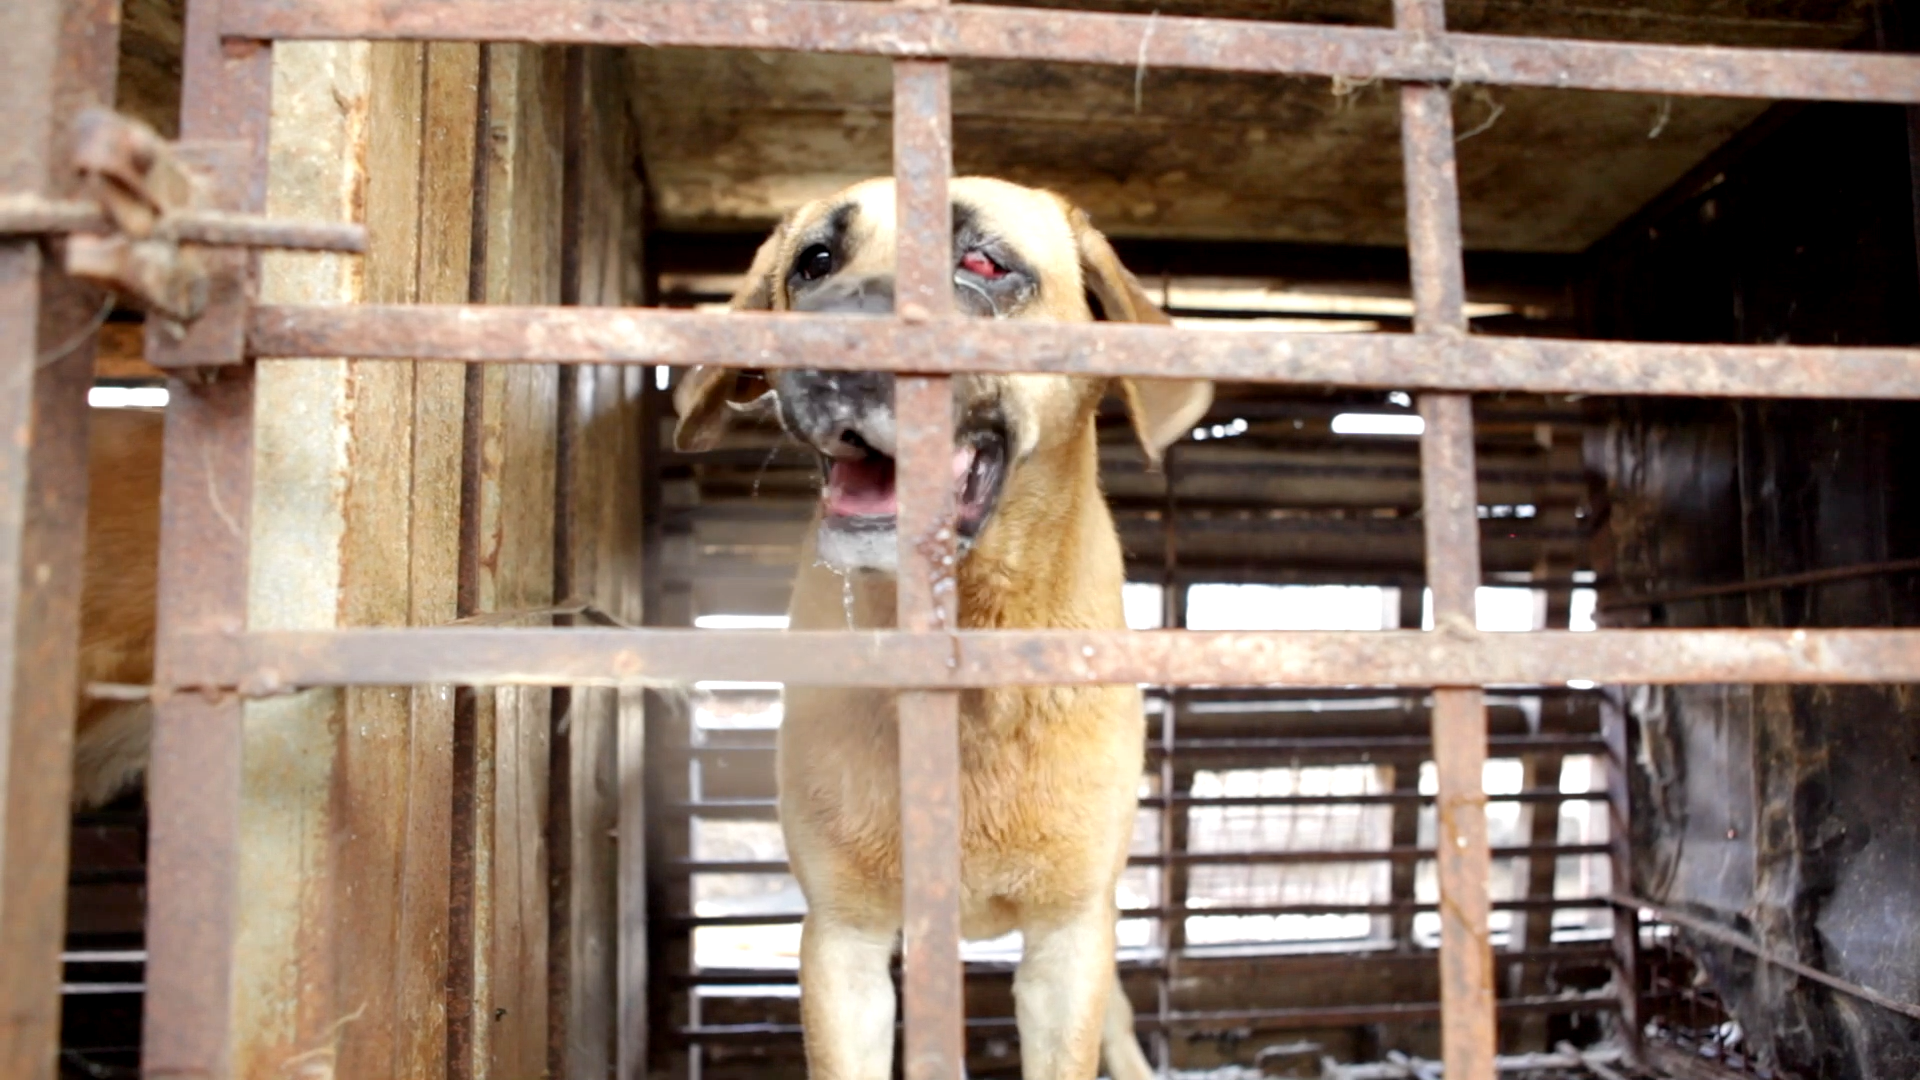 South Korea's Dog Meat Trade